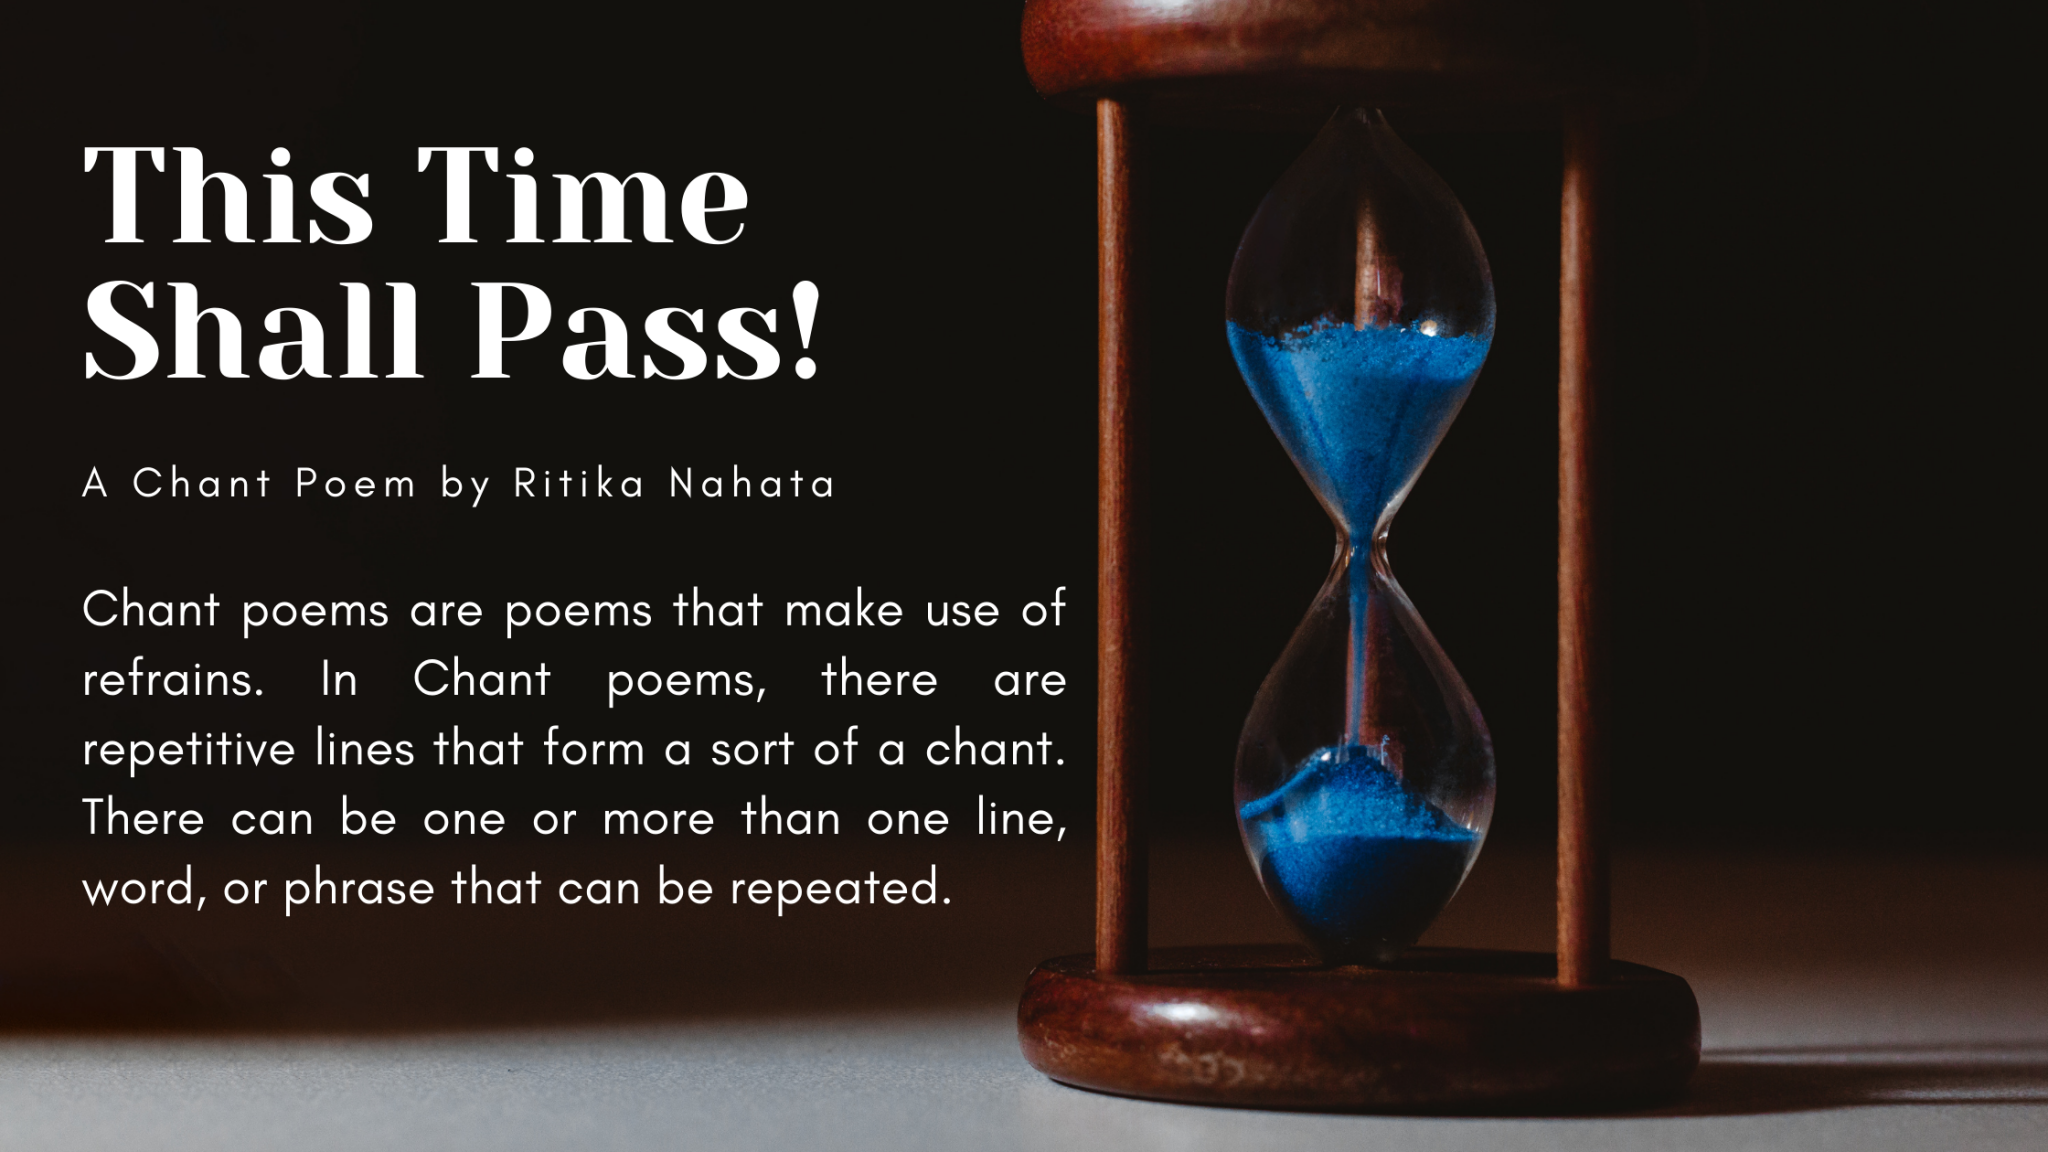 This time shall pass | A Chant poem by Ritika Nahata at UpDivine